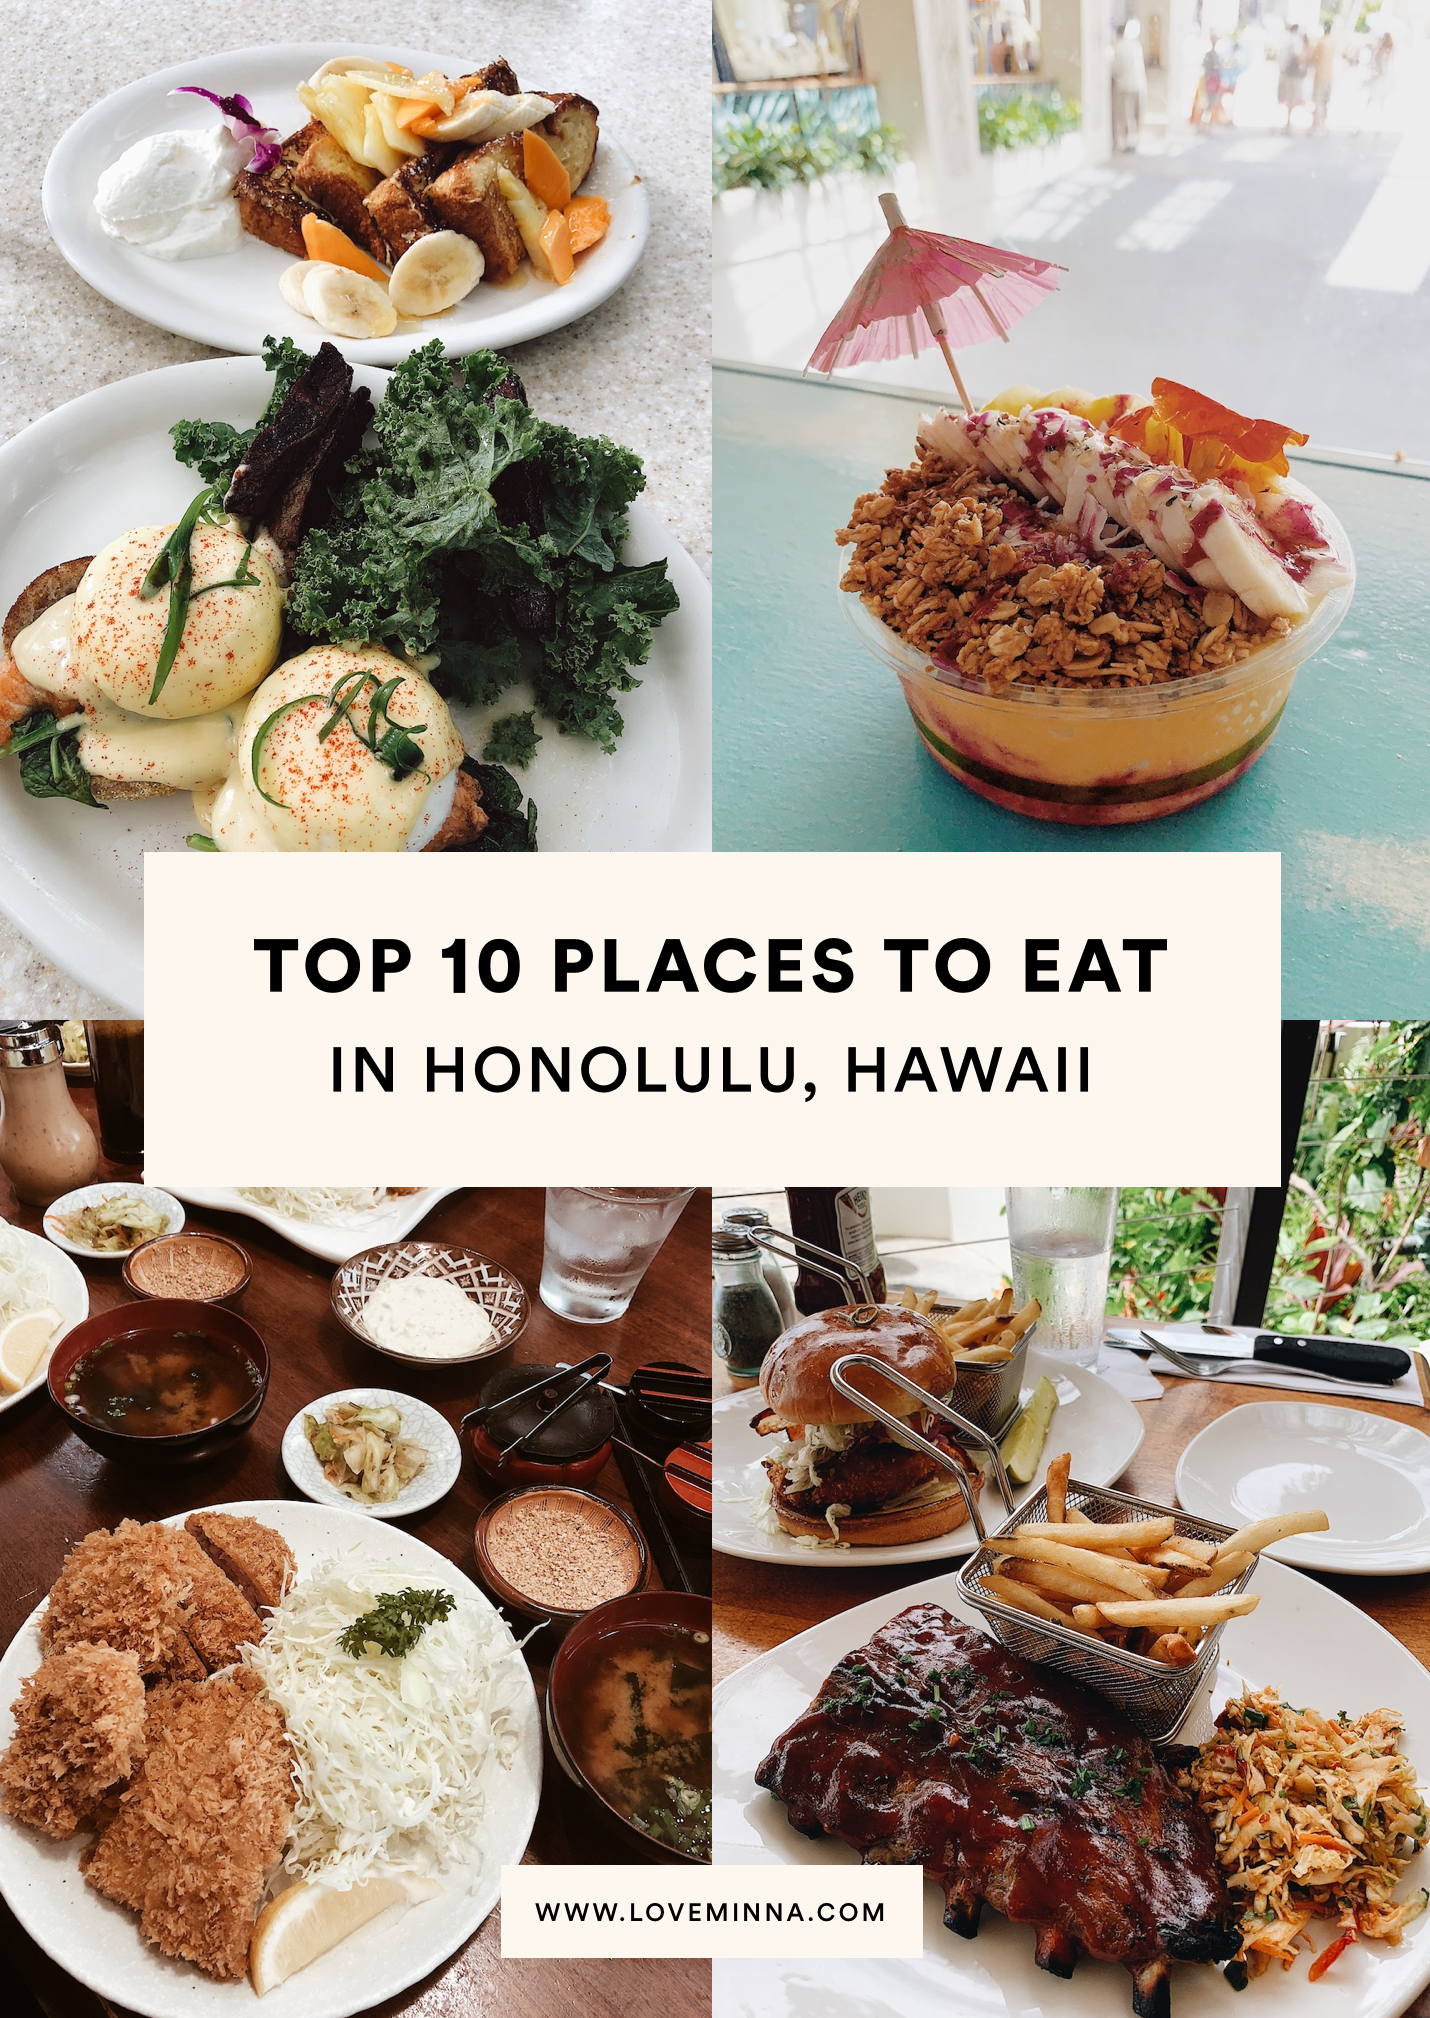 Top 10 Places to Eat in Honolulu, Hawaii  – Love, Minna